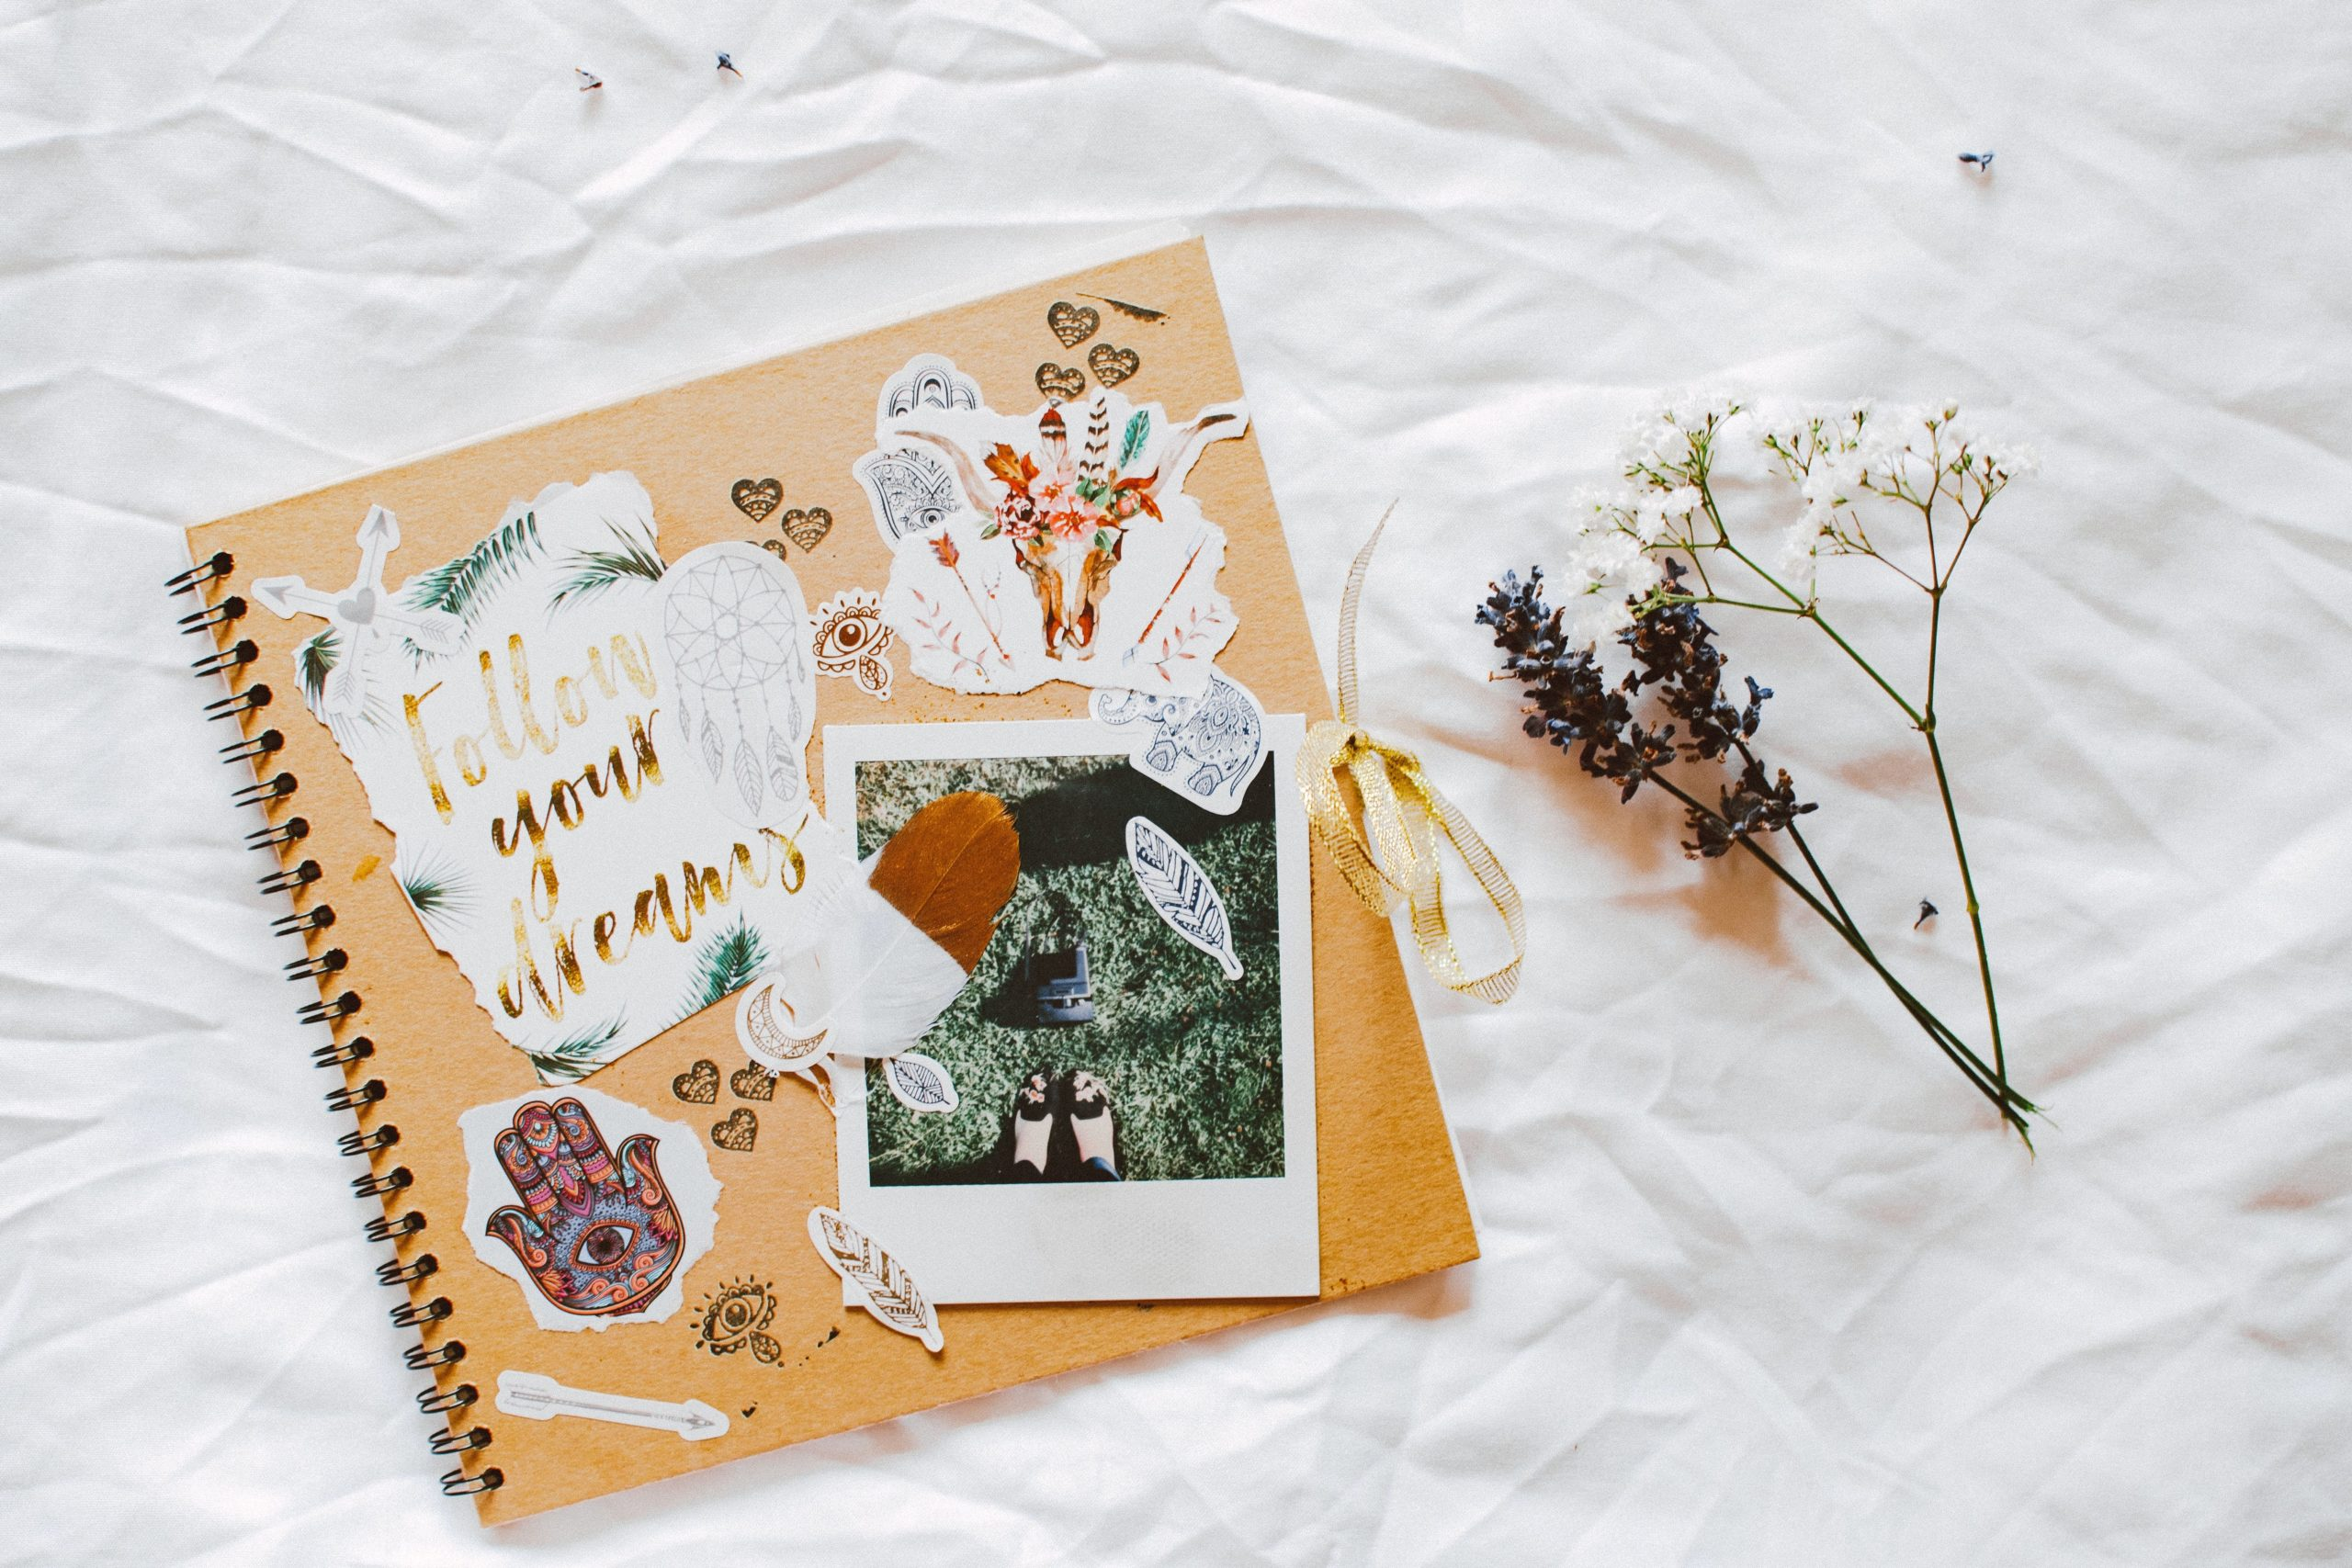 scrapbook on white textile, next to a flower. Scrapbooks are a good idea when it comes to planning events, like a wedding!